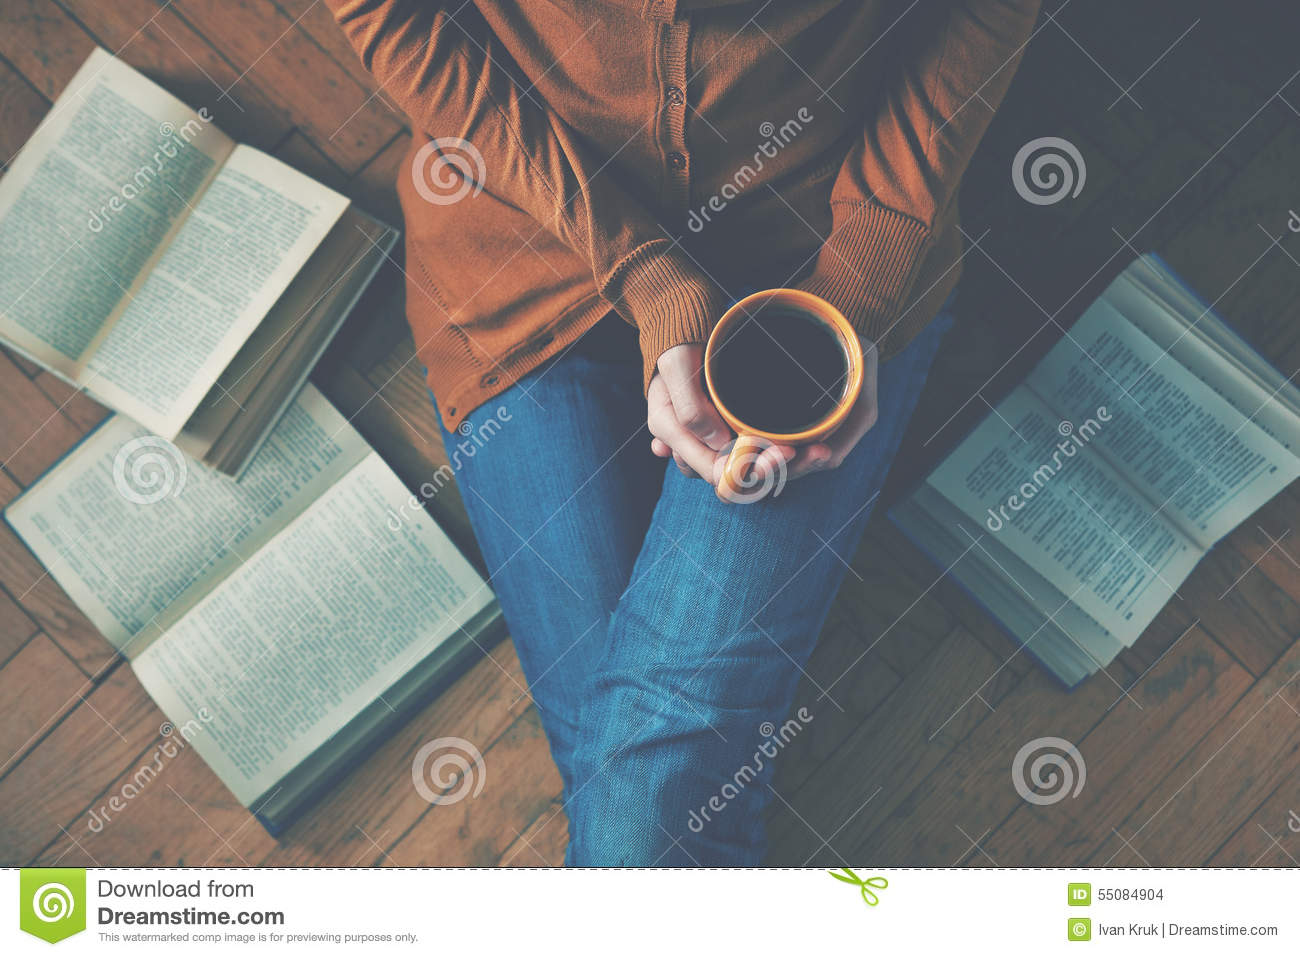 Coffee cup after reading books